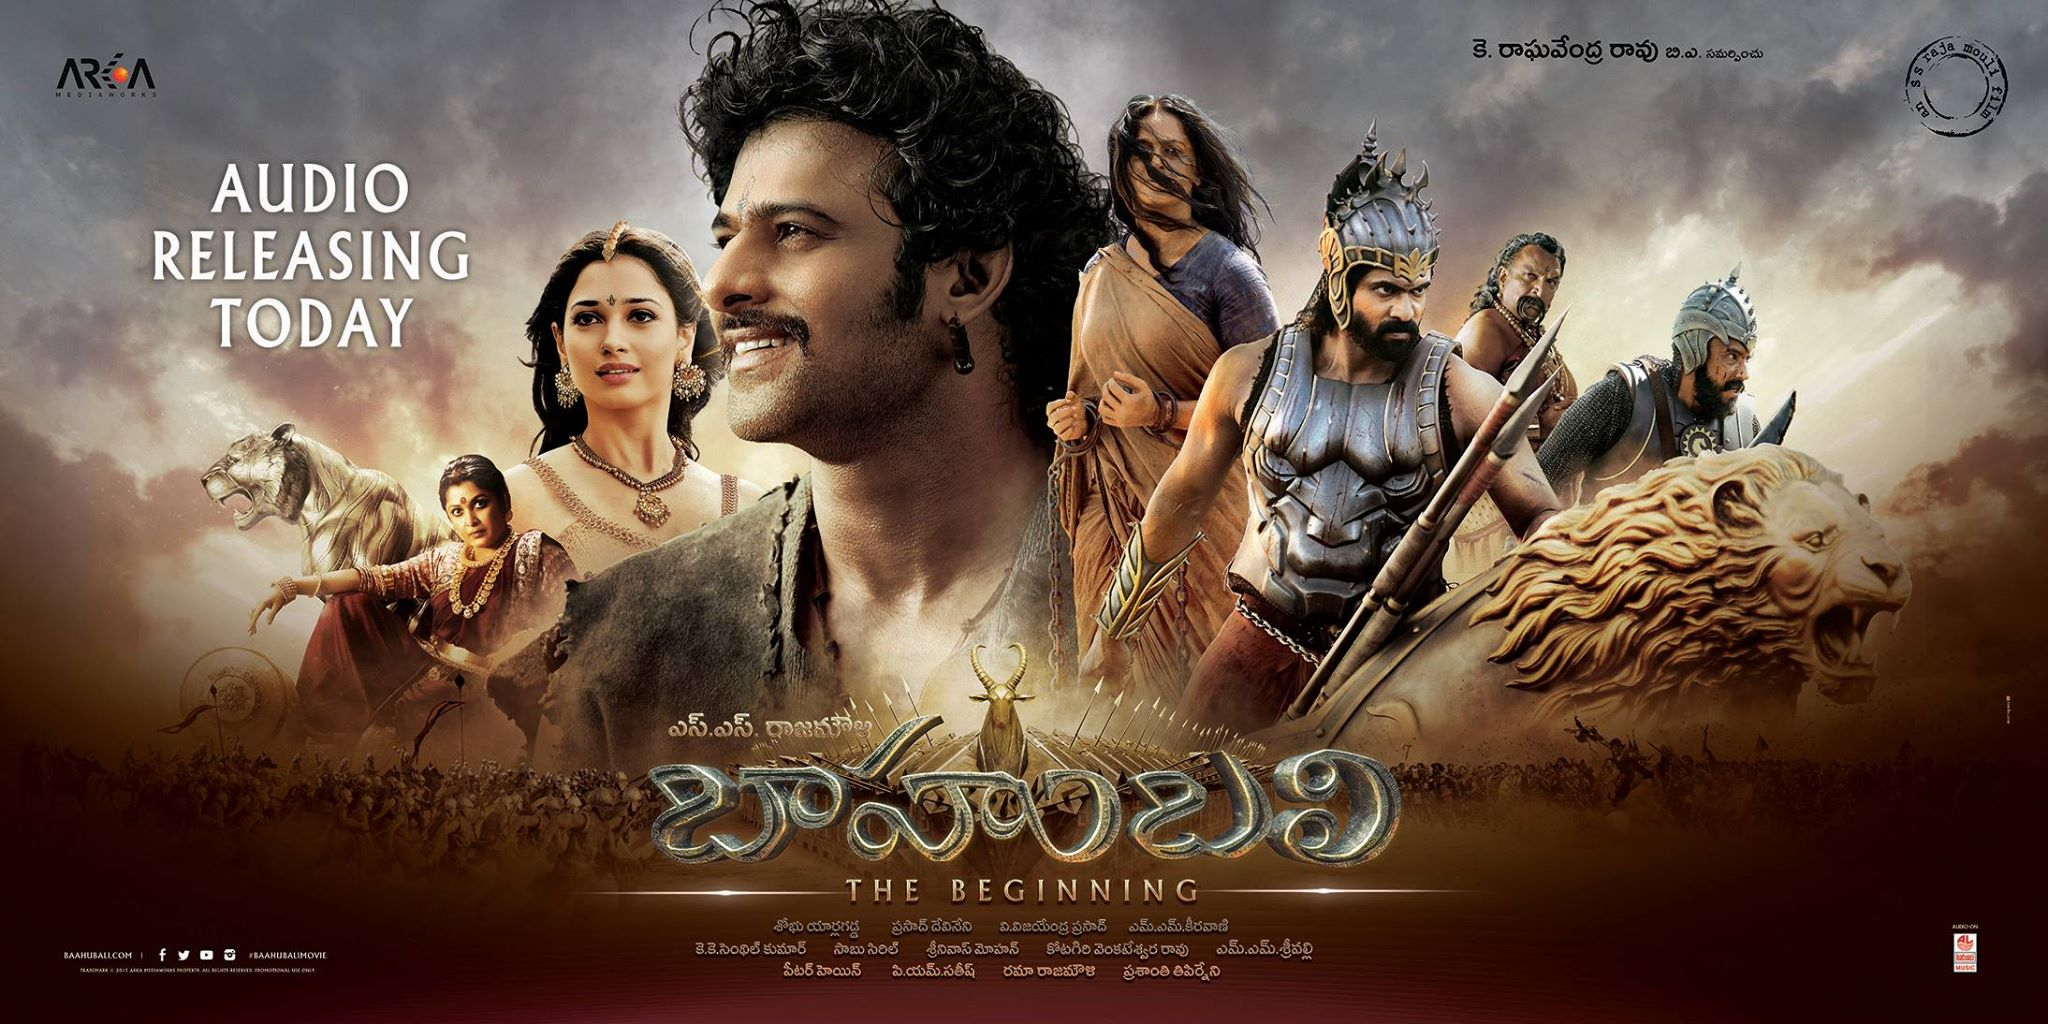 http://www.chitramala.in/wp-content/gallery/bahubali-movie-latest-posters/xBaahubali-Audio-Release-Poster.jpg.pagespeed.ic.zDT0WBBCUN.jpg